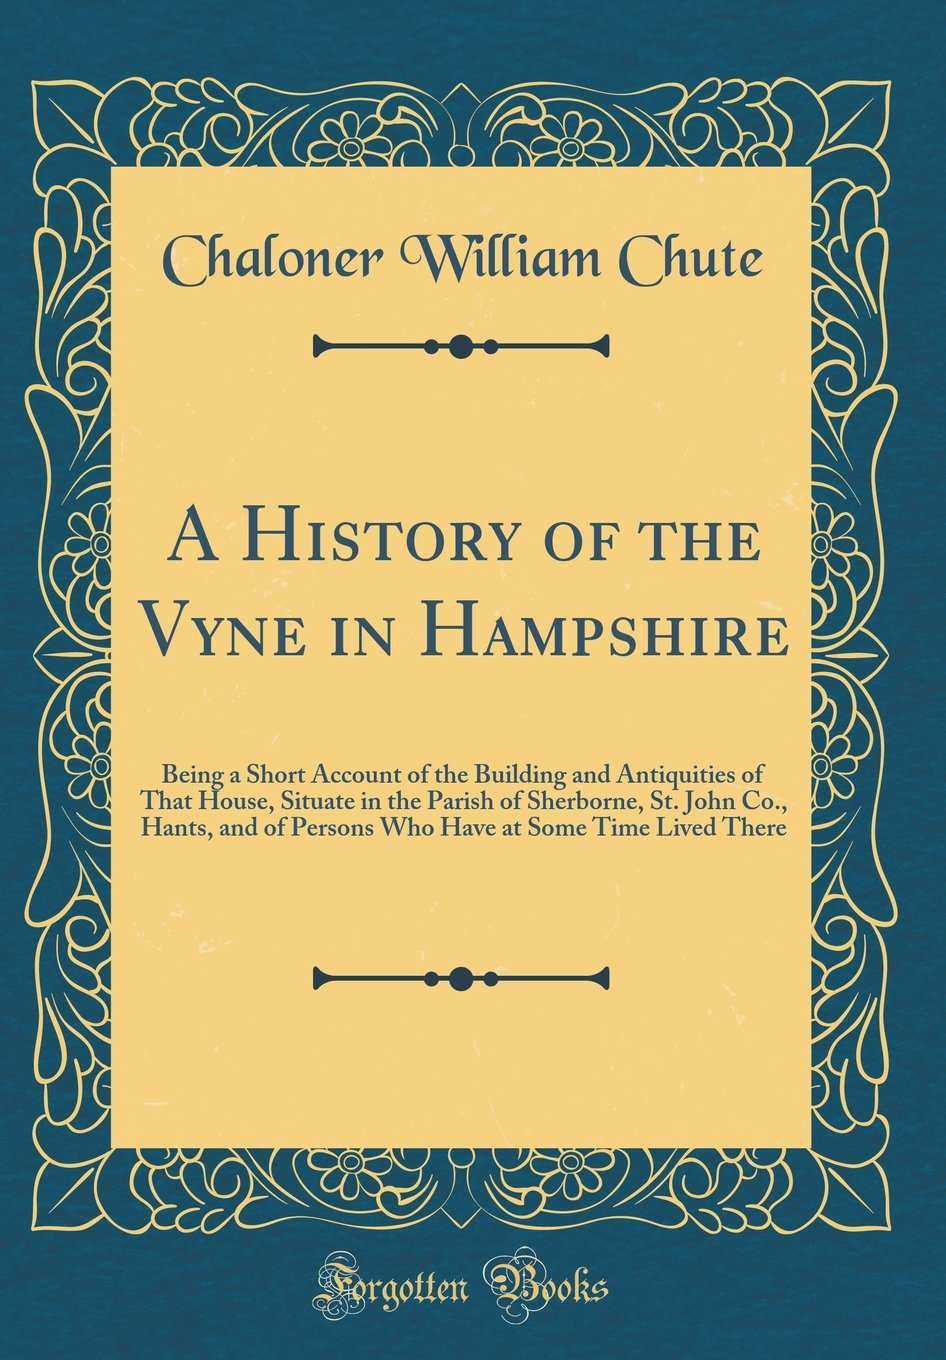 Download A History of the Vyne in Hampshire: Being a Short Account of the Building and Antiquities of That House, Situate in the Parish of Sherborne, St. John ... at Some Time Lived There (Classic Reprint) pdf